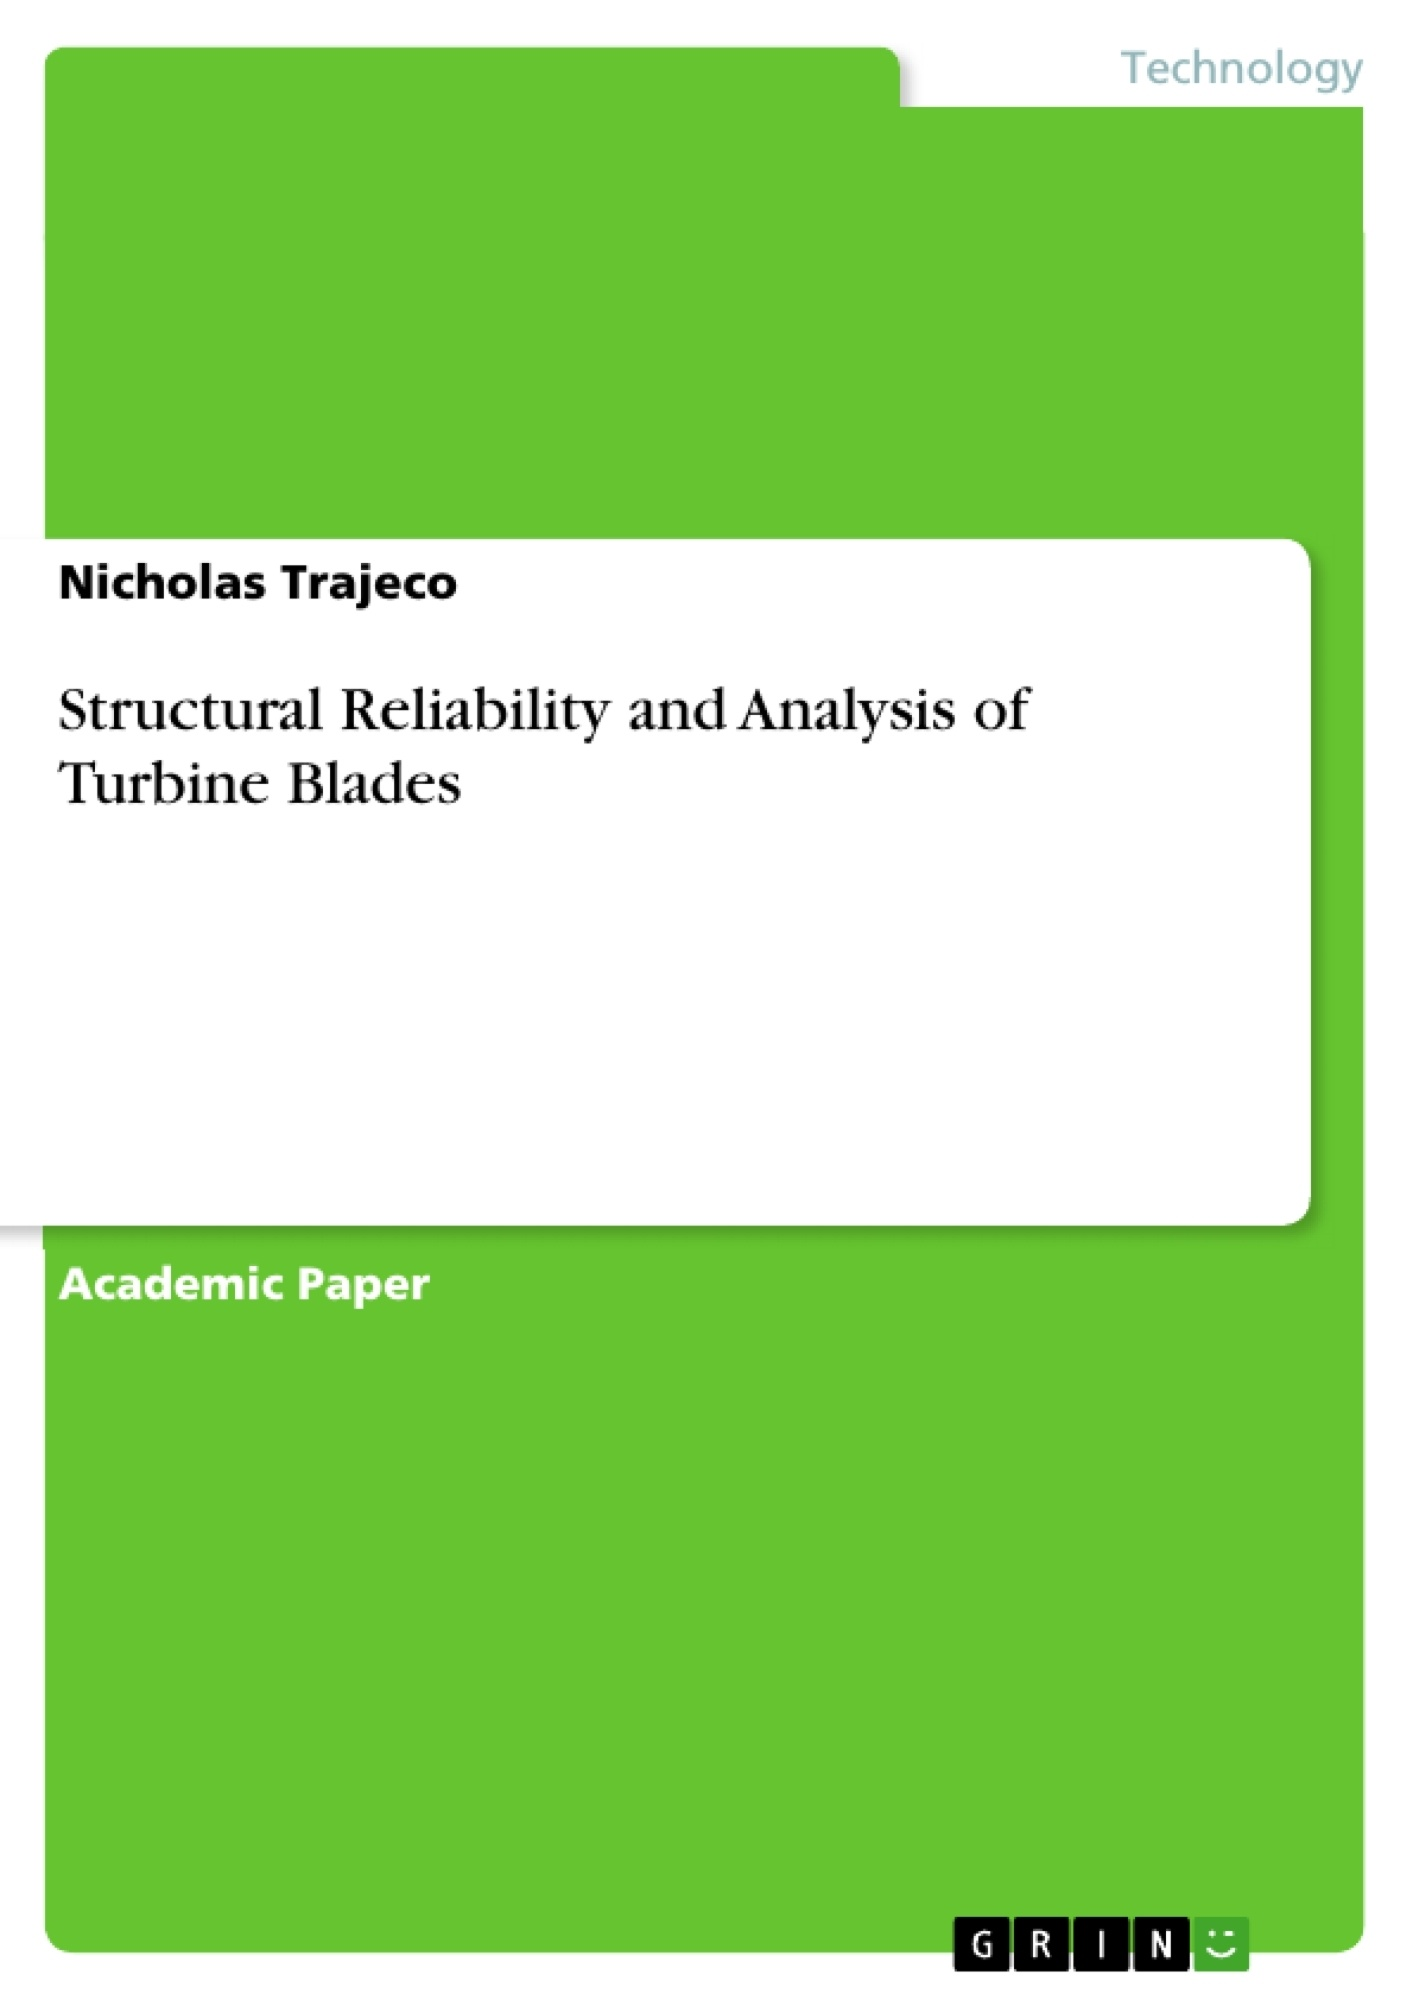 Title: Structural Reliability and Analysis of Turbine Blades